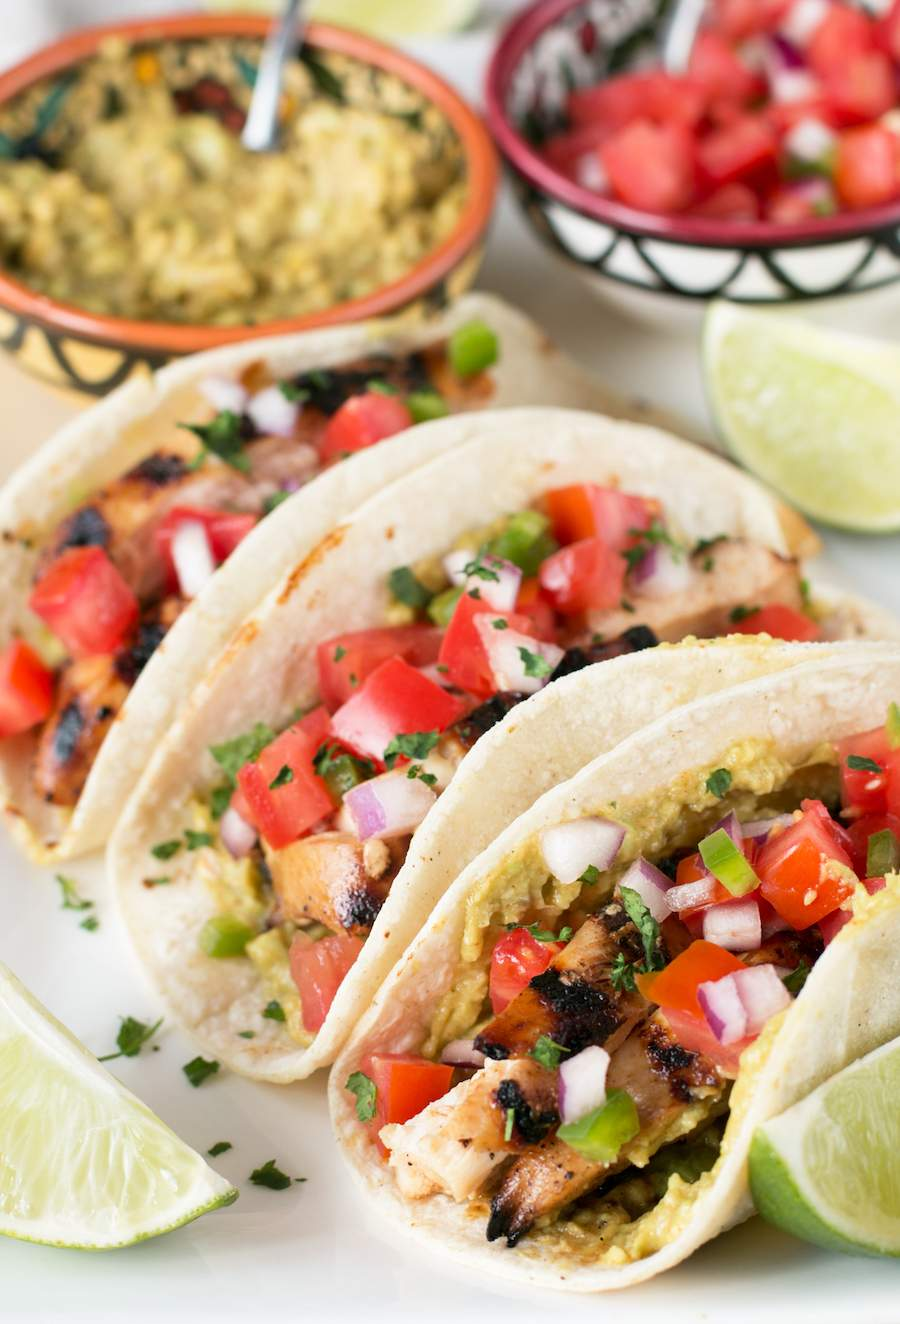 Three Mexican Chicken Tacos on a white plate in corn tortillas.